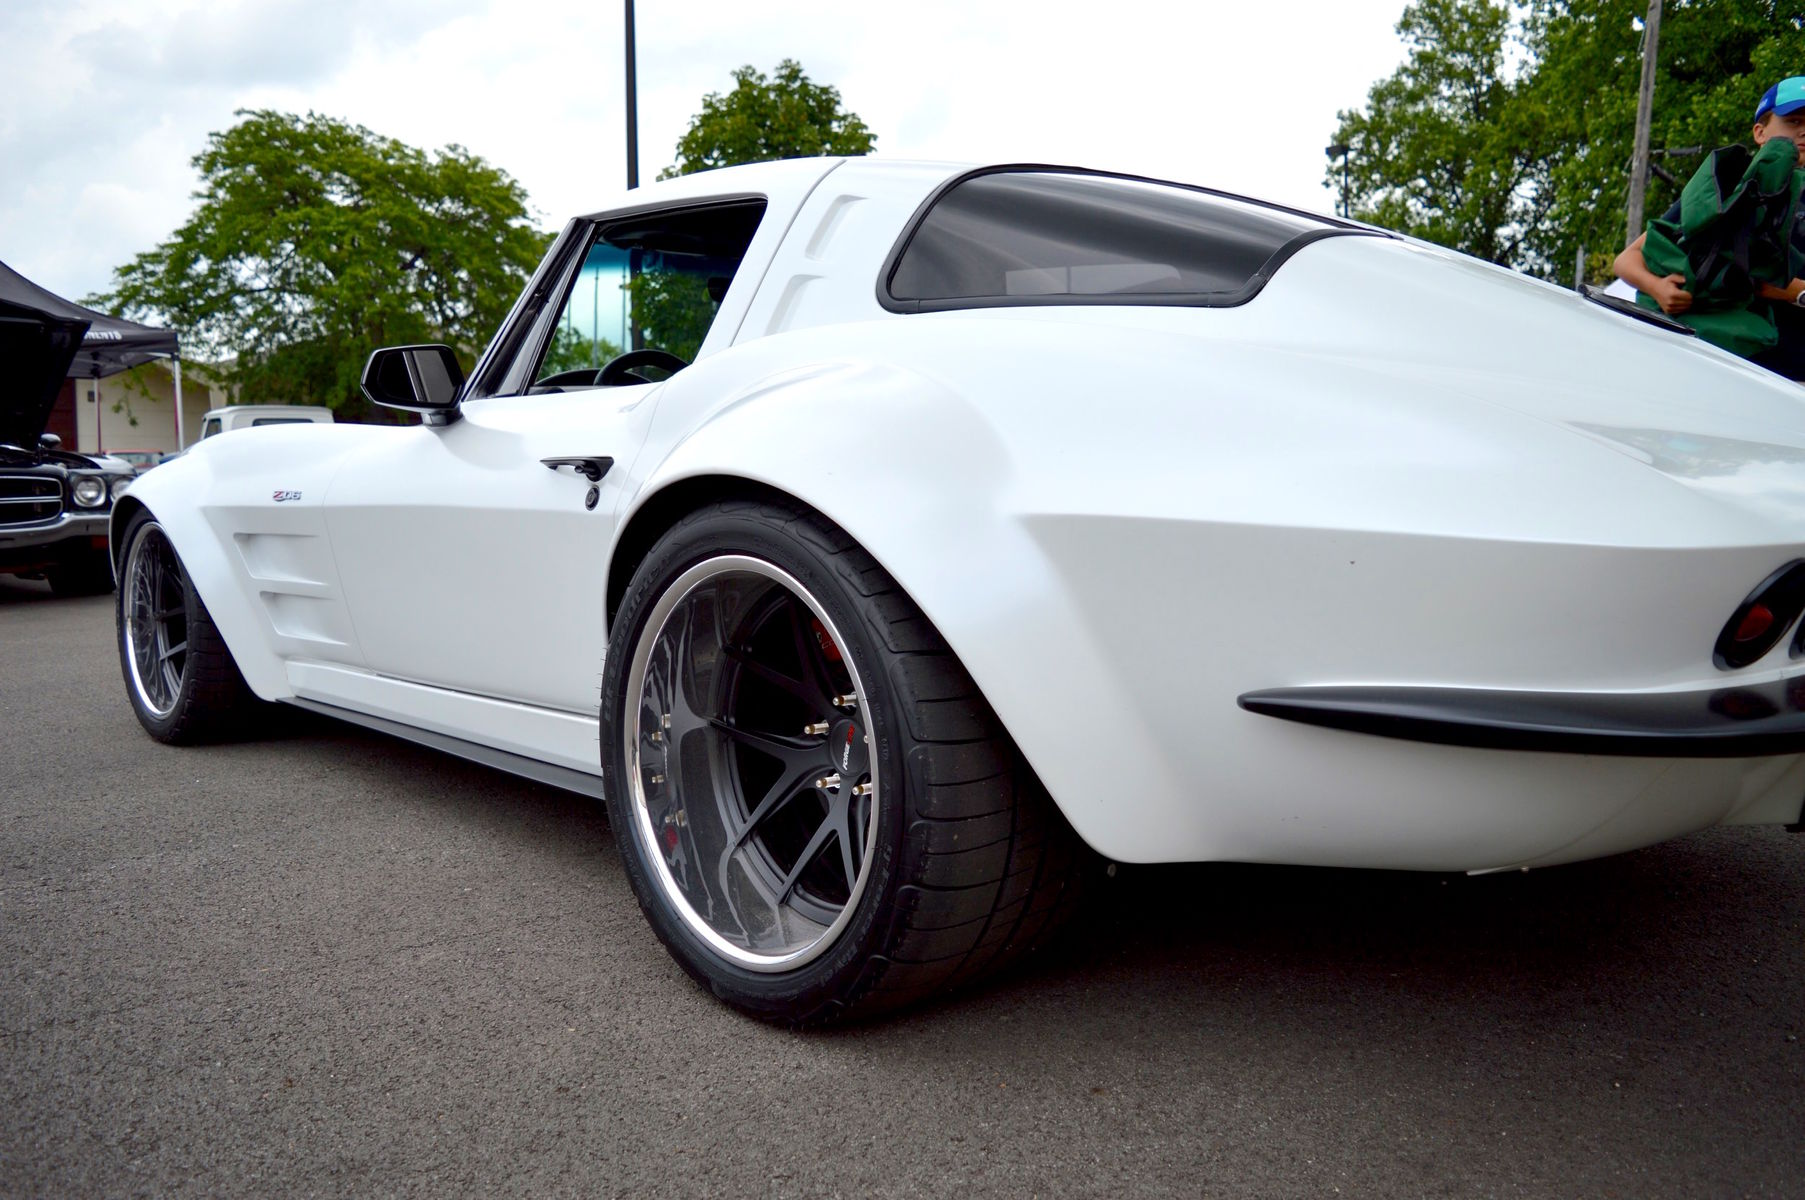 1963 Chevrolet Corvette Stingray | Ron Scott's 1963 Corvette Stingray on Forgeline VX3C Concave Wheels